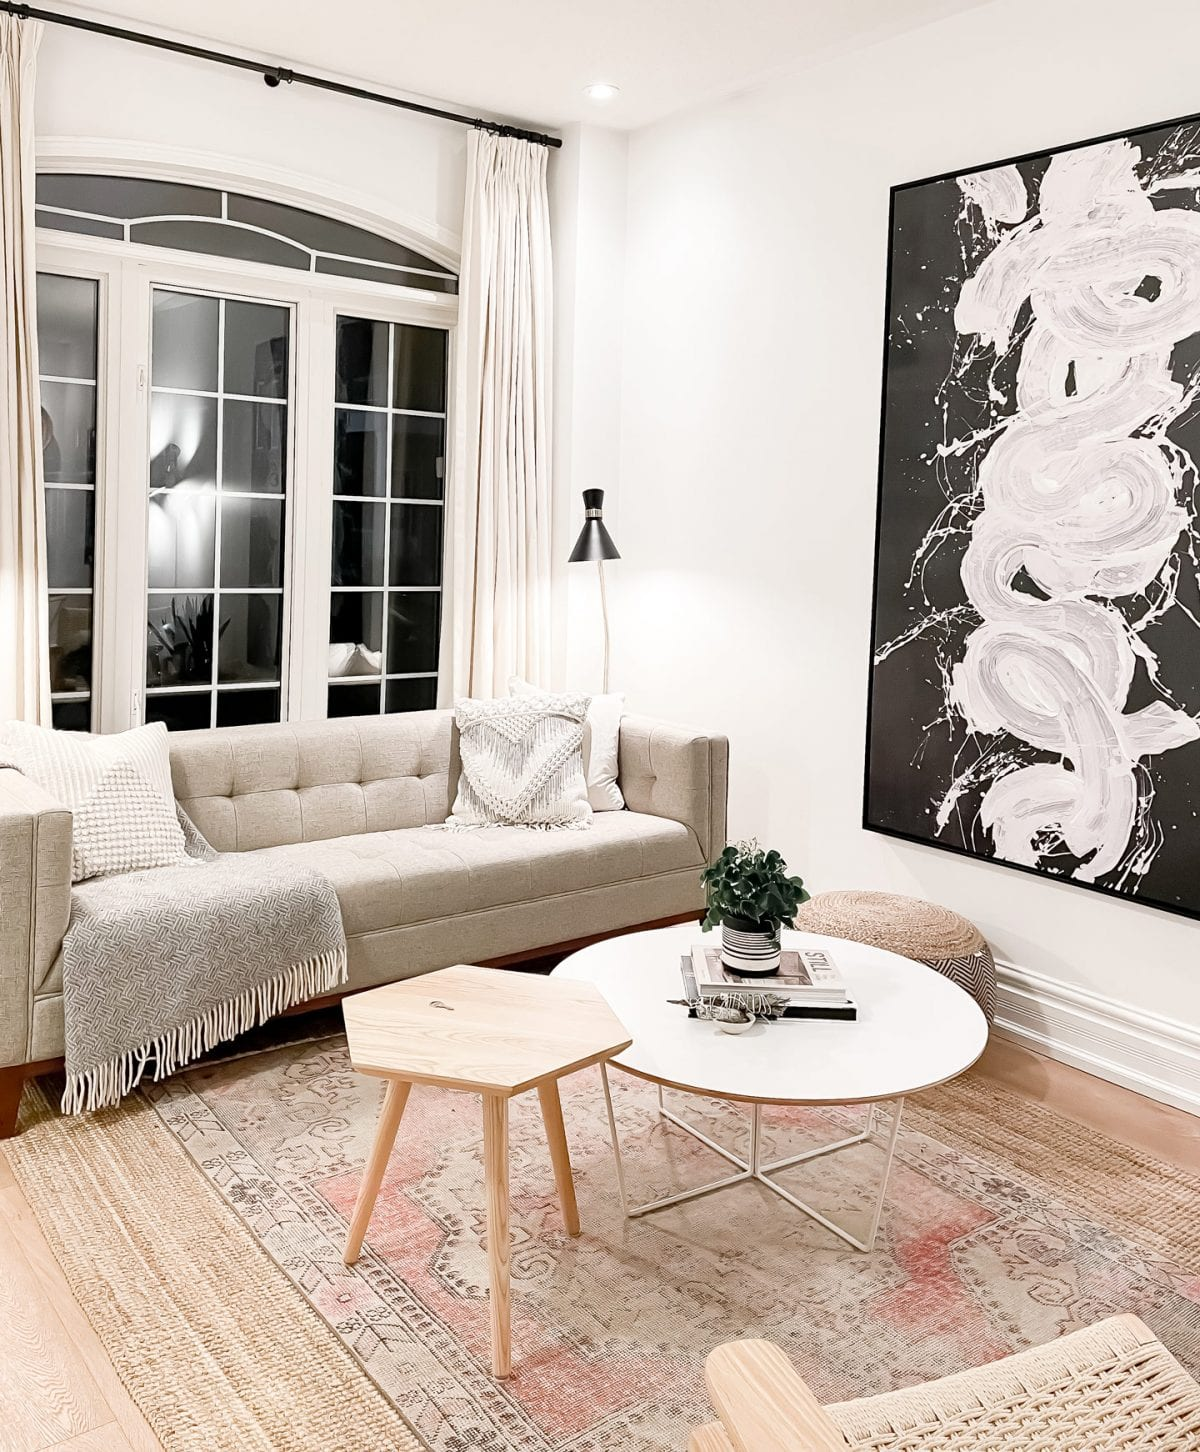 5 valuable tips for home buying. This is a beautiful living room with a modern mid-century sofa, contemporary artwork and scandinavian furnishings.